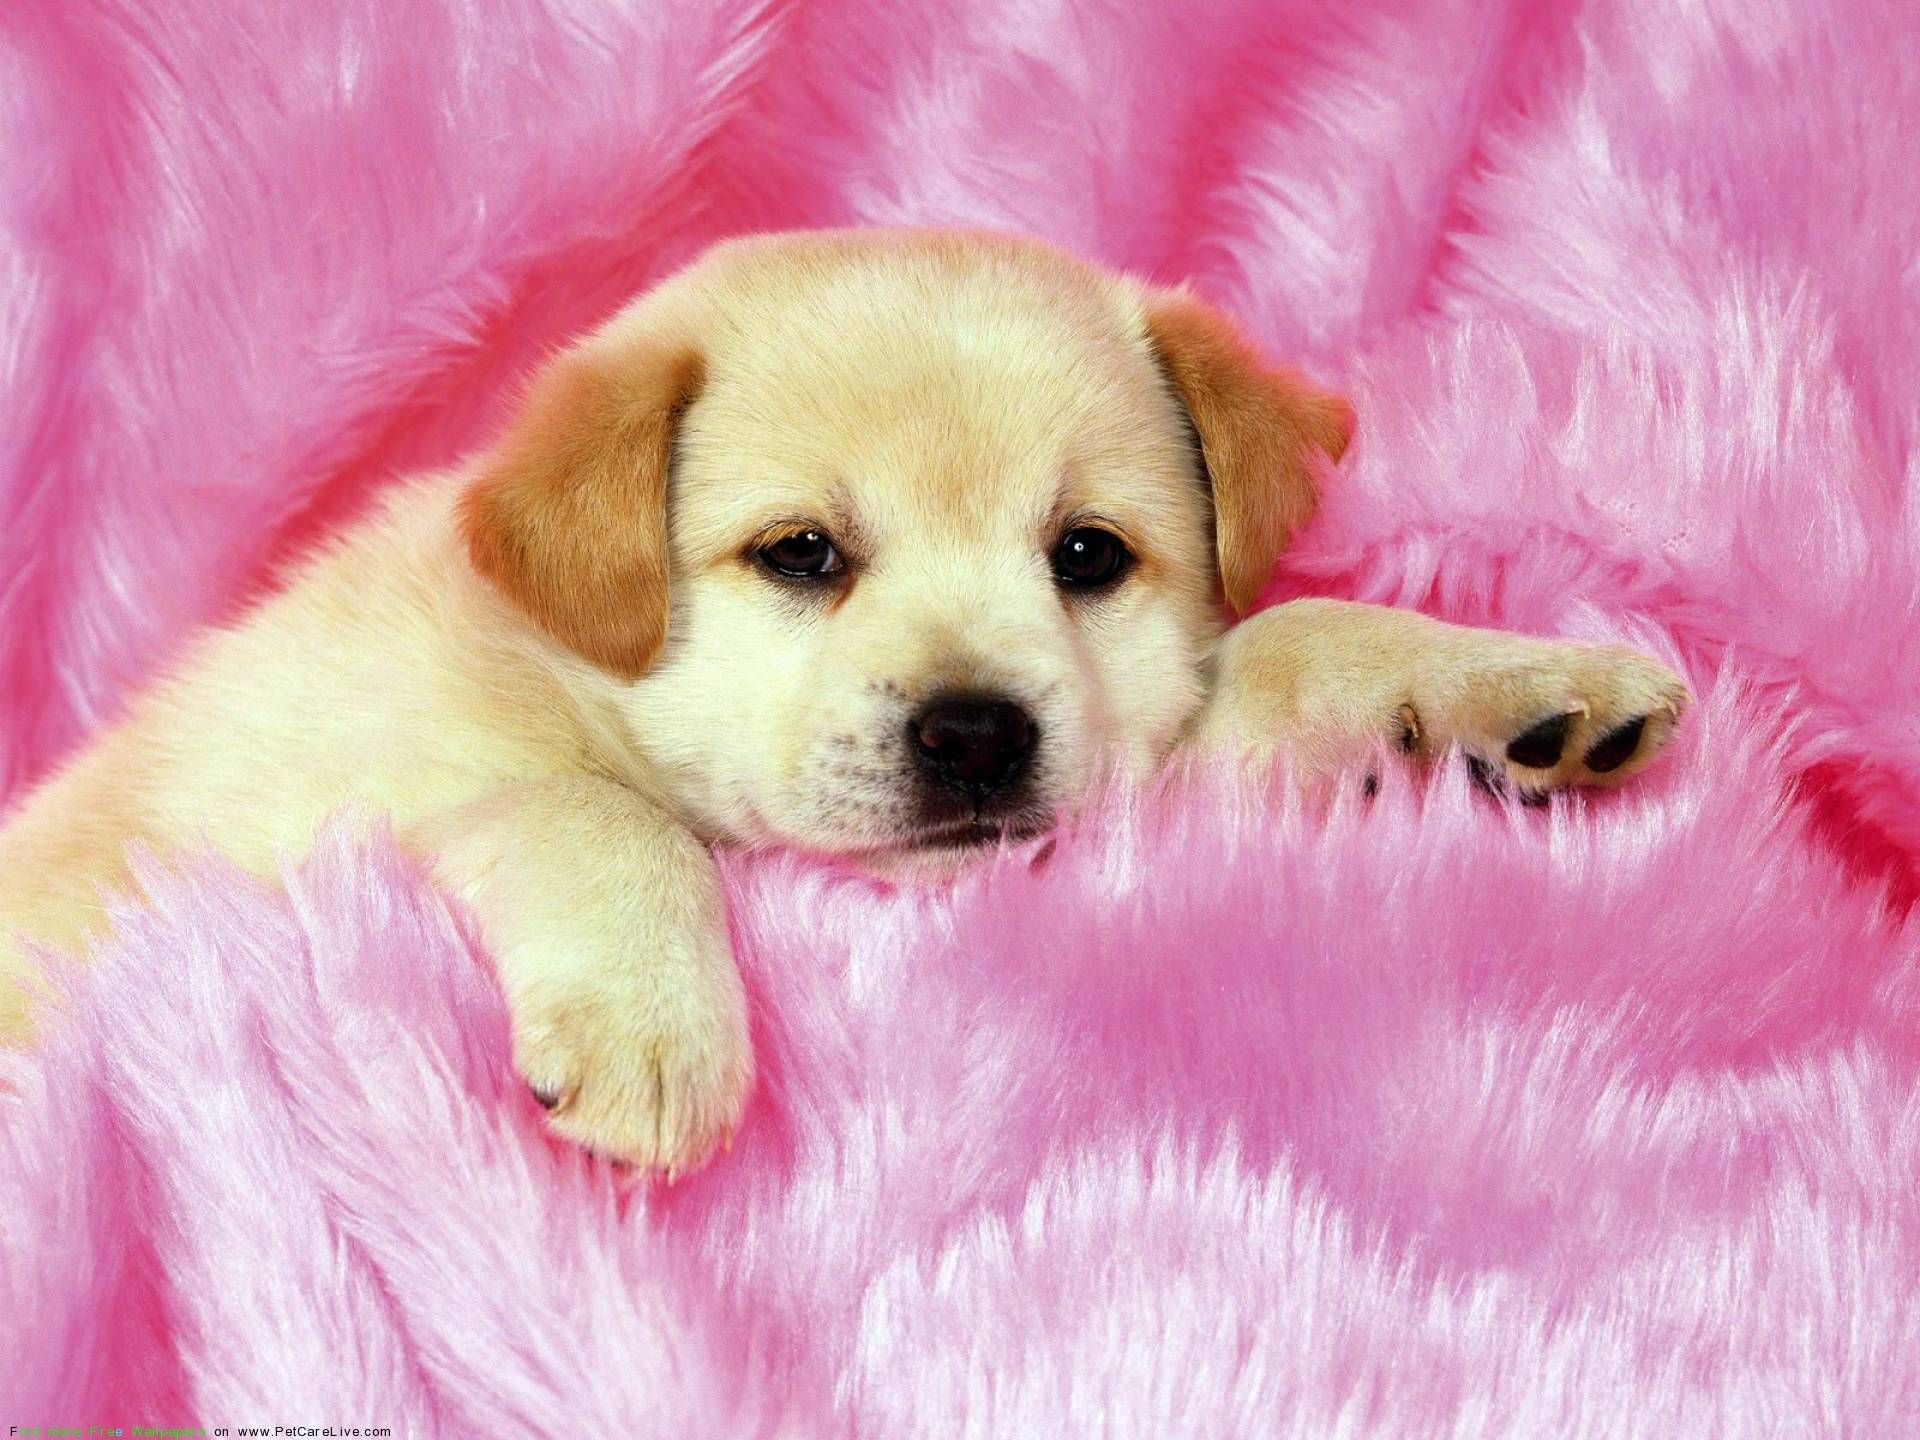 cute dogs and puppies wallpapers - wallpaper cave | dogs